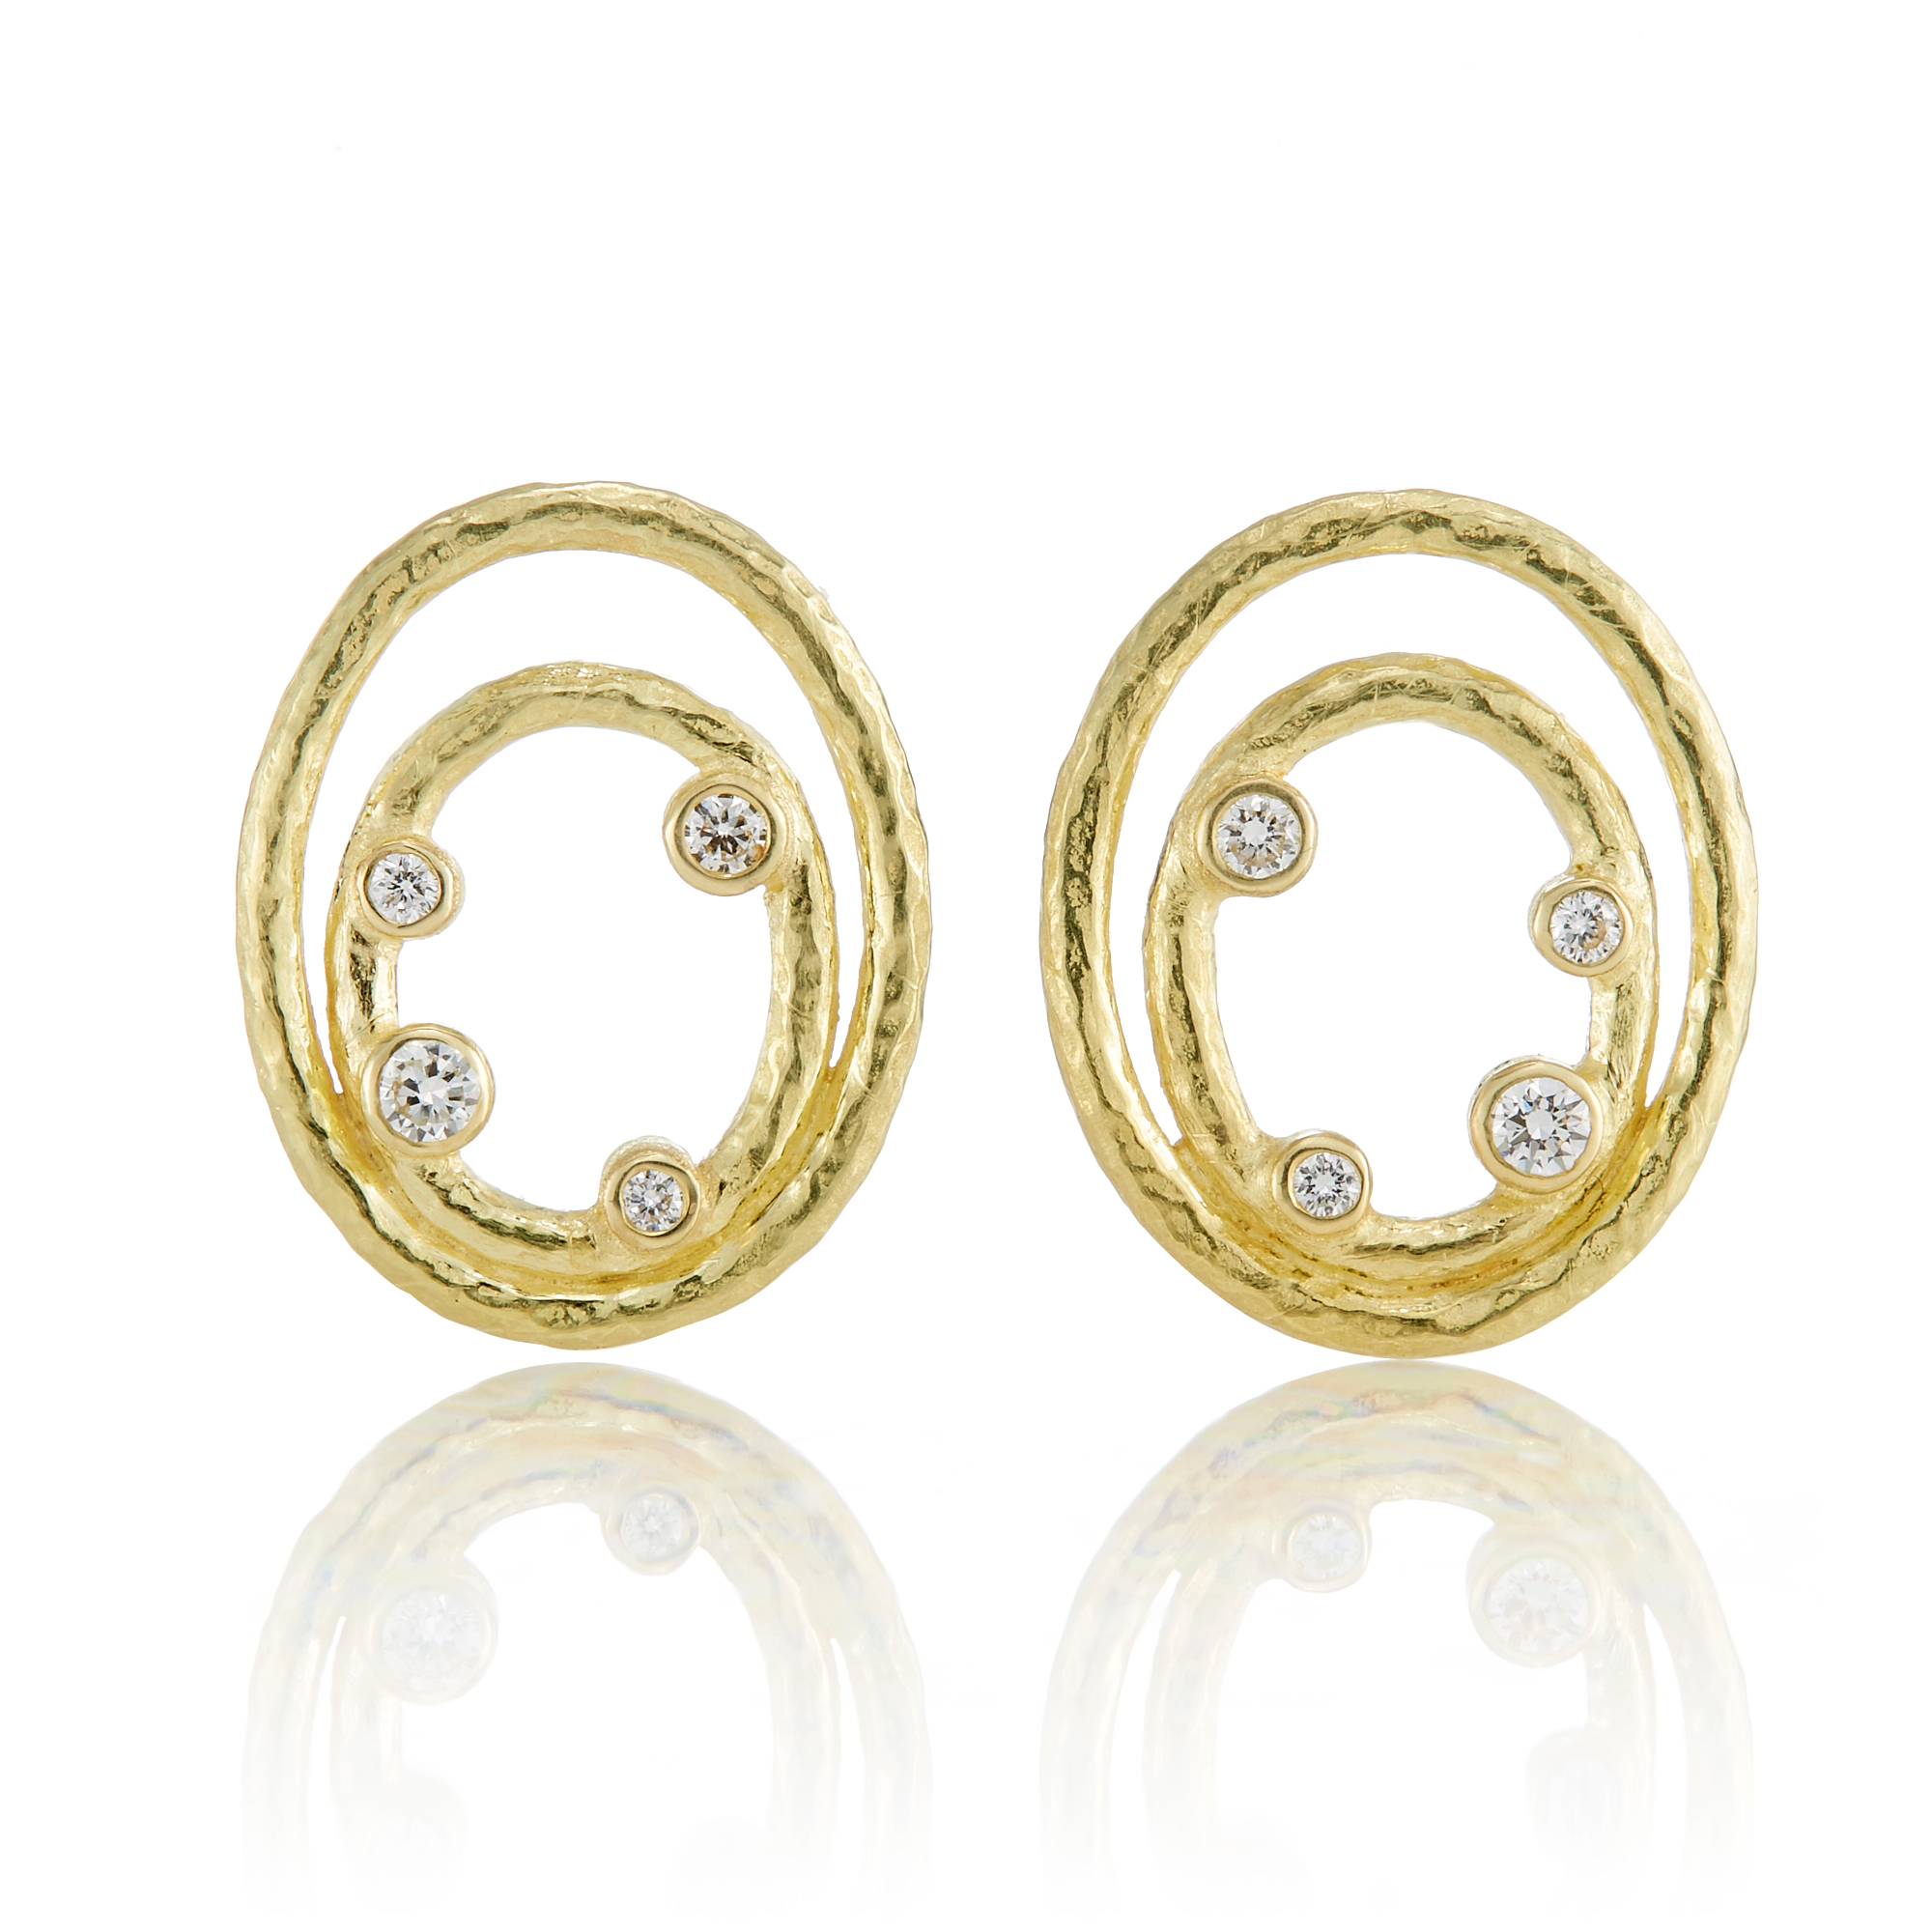 Barbara Heinrich Hammered Textured Double Oval & Diamond Earrings